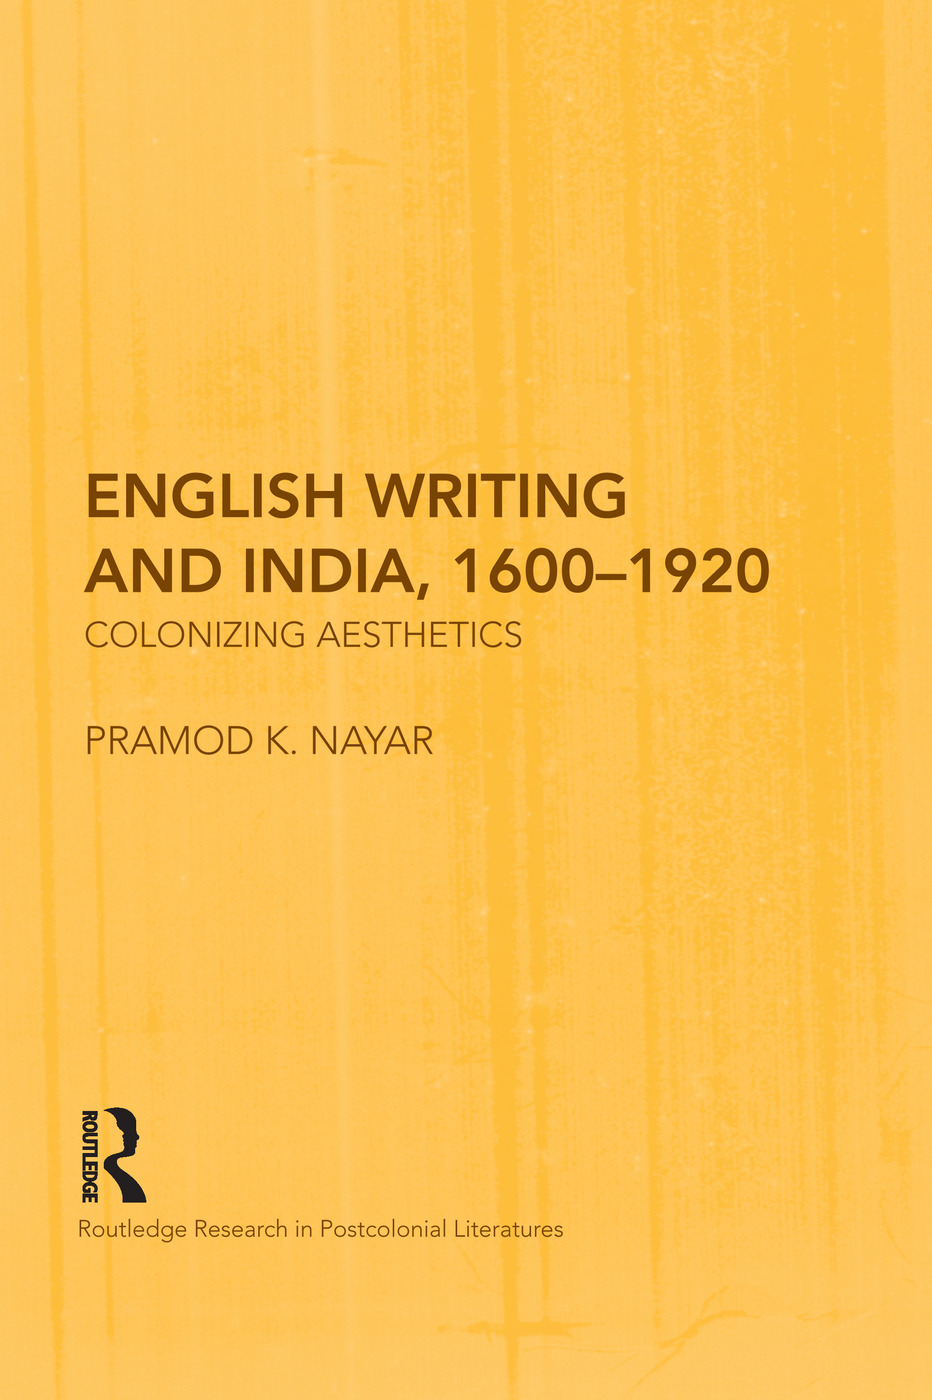 English Writing and India, 1600-1920: Colonizing Aesthetics, 1st Edition (Paperback) book cover